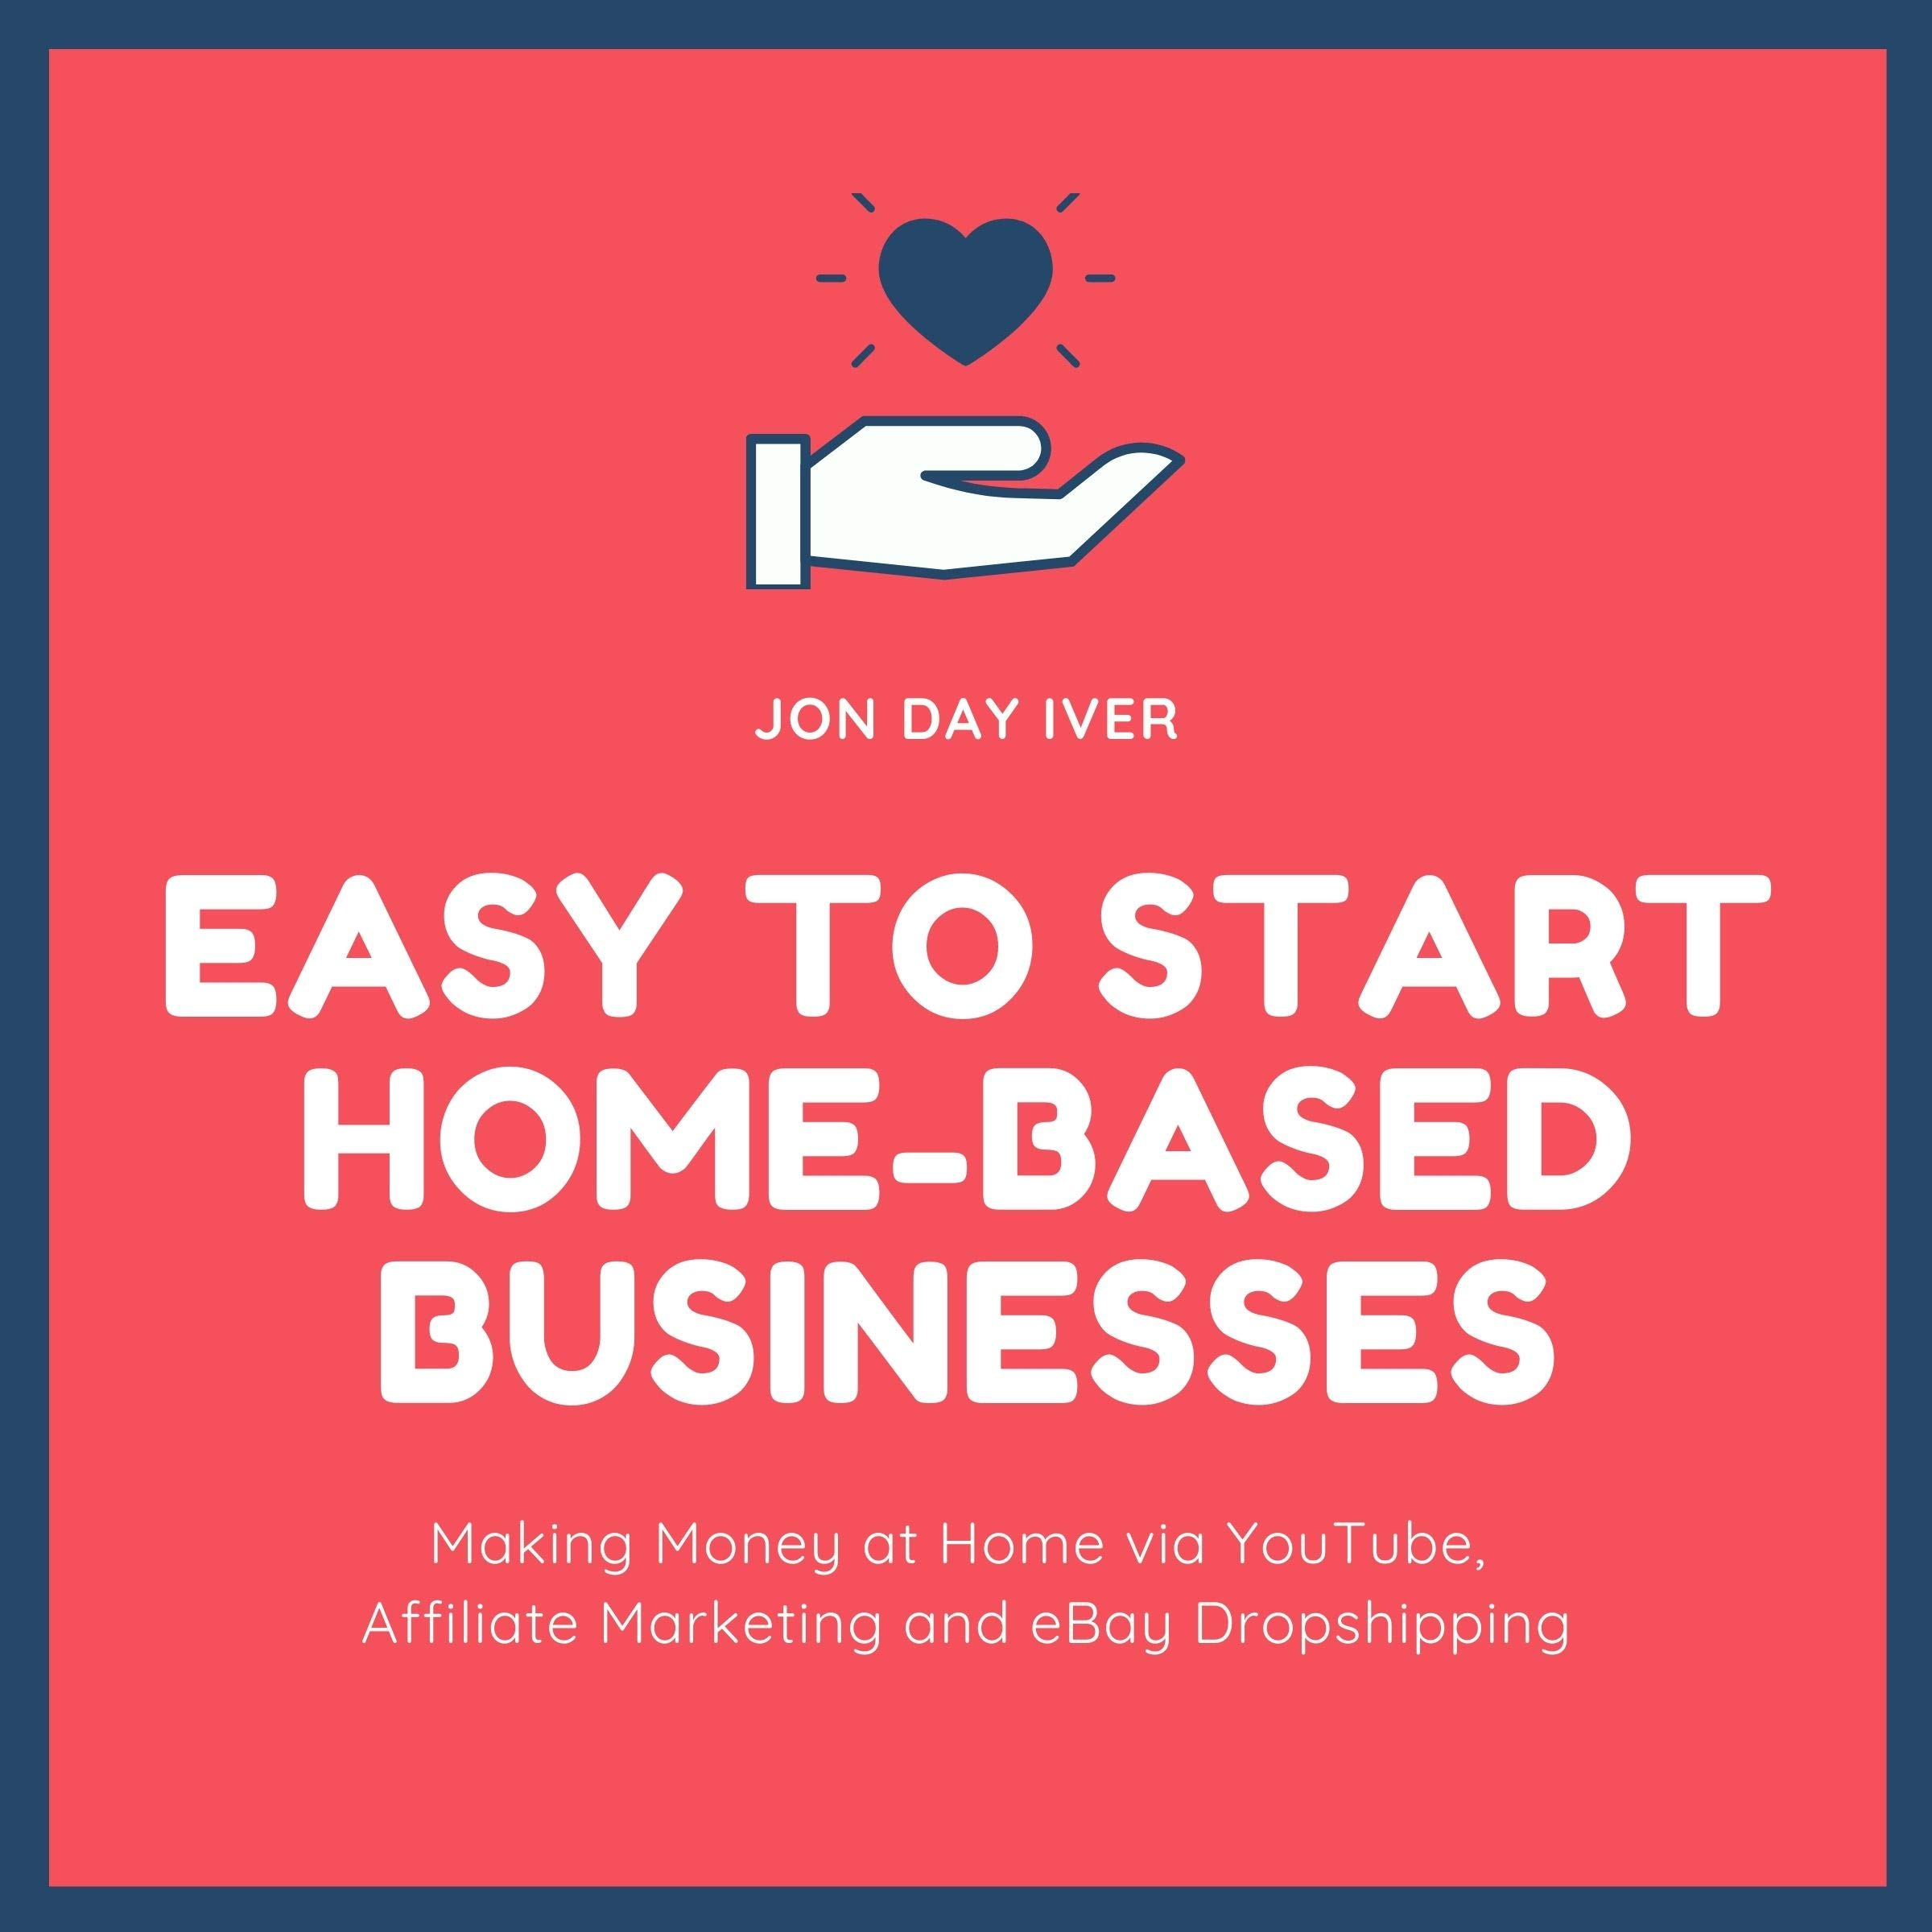 Easy to Start Home-Based Businesses: Making Money at Home via YouTube, Affiliate Marketing and eBay Dropshipping